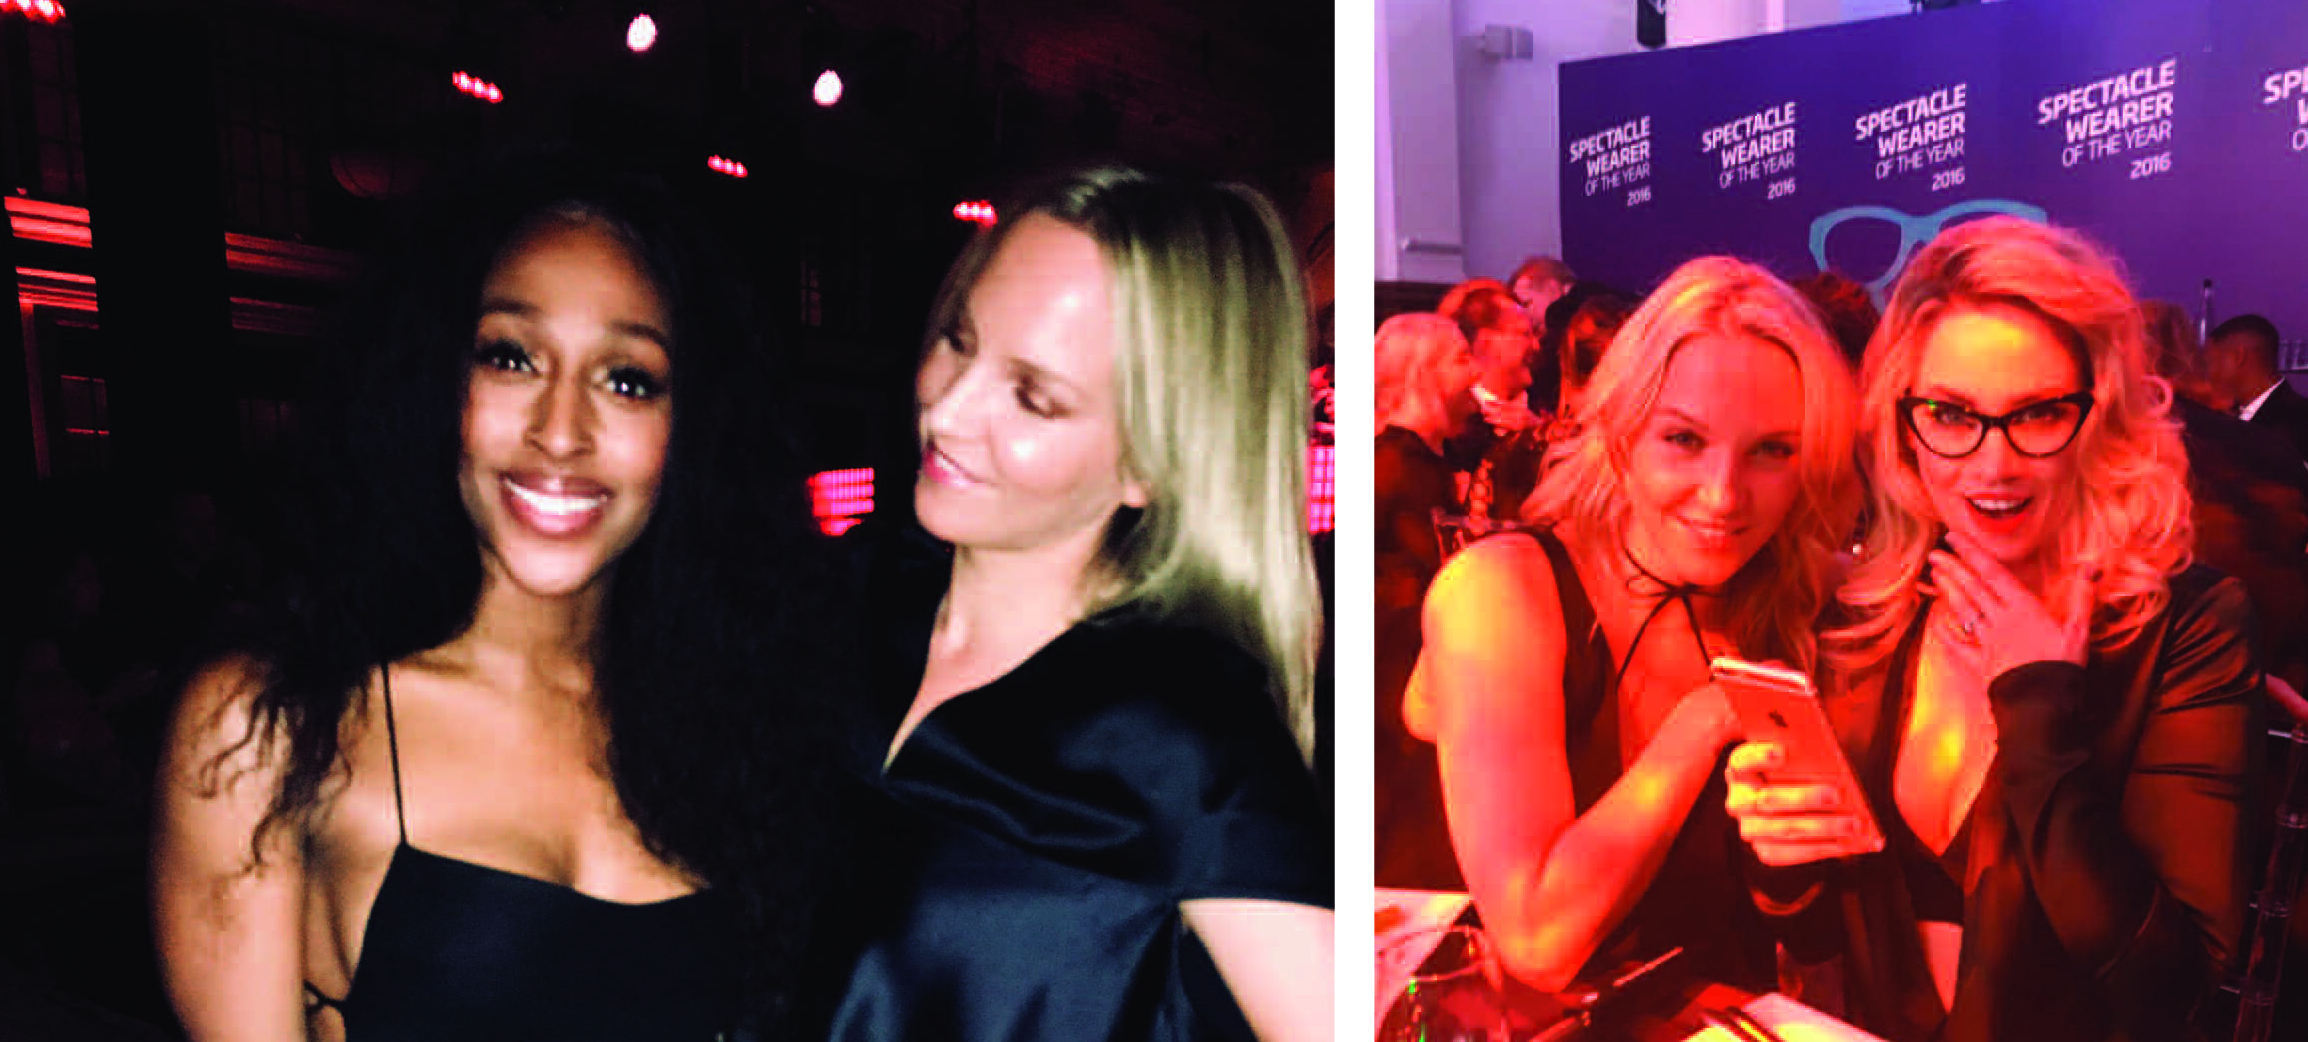 Above: Ellie Fitzgerald with Alexandra Burke (former winner of the X Factor) and Pussycat Dolls' Kimberly Wyatt.